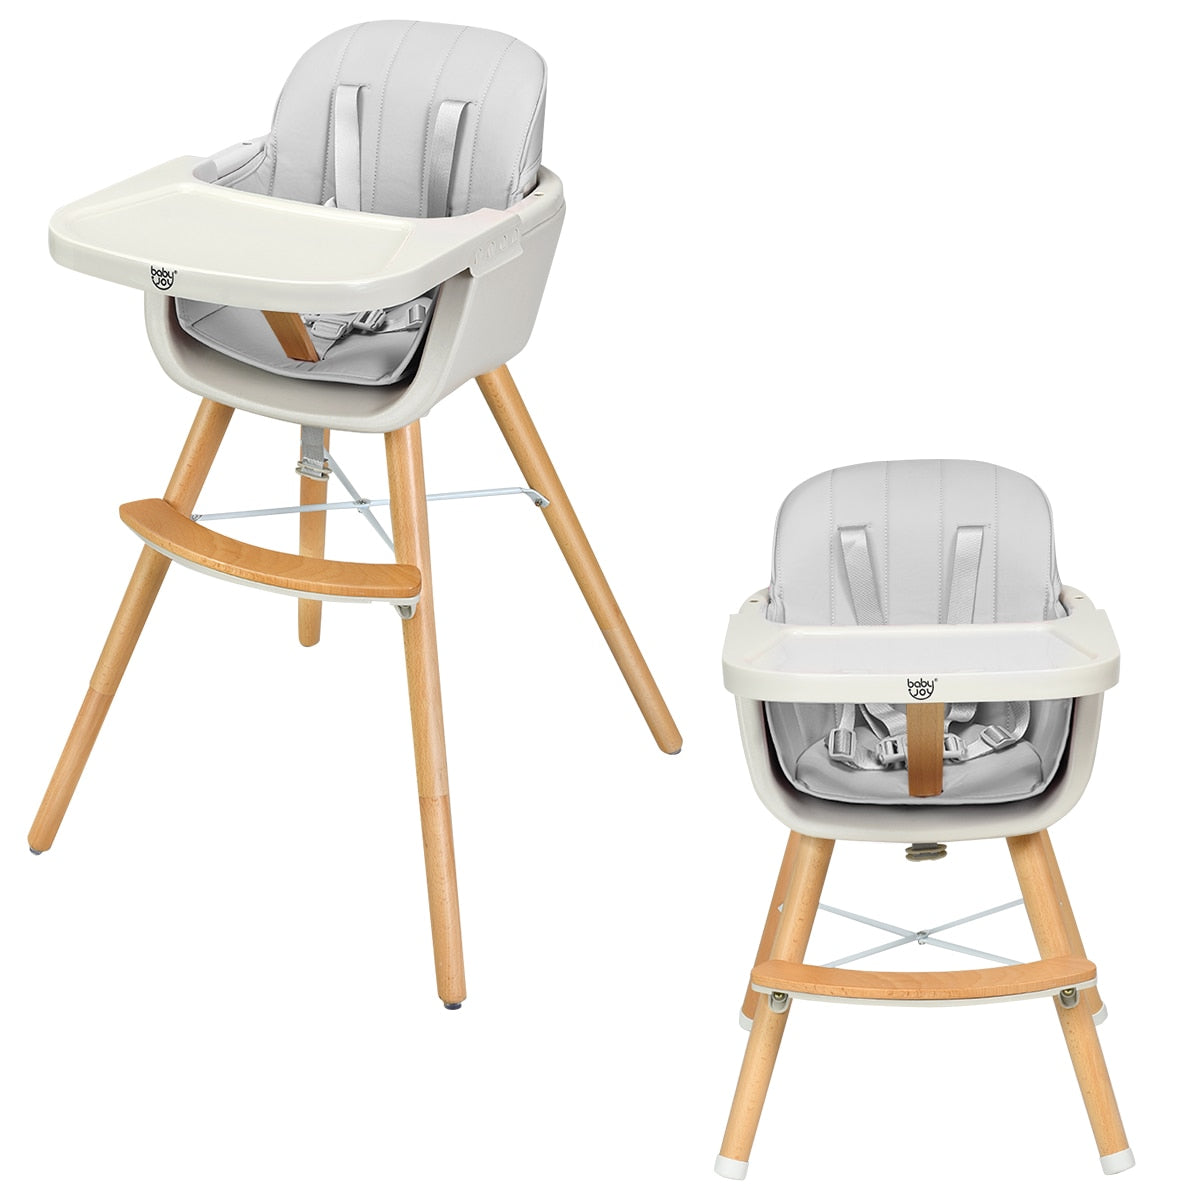 Convertible Wooden High Chair Baby Toddler Highchair w/ Cushion - Buy Babby